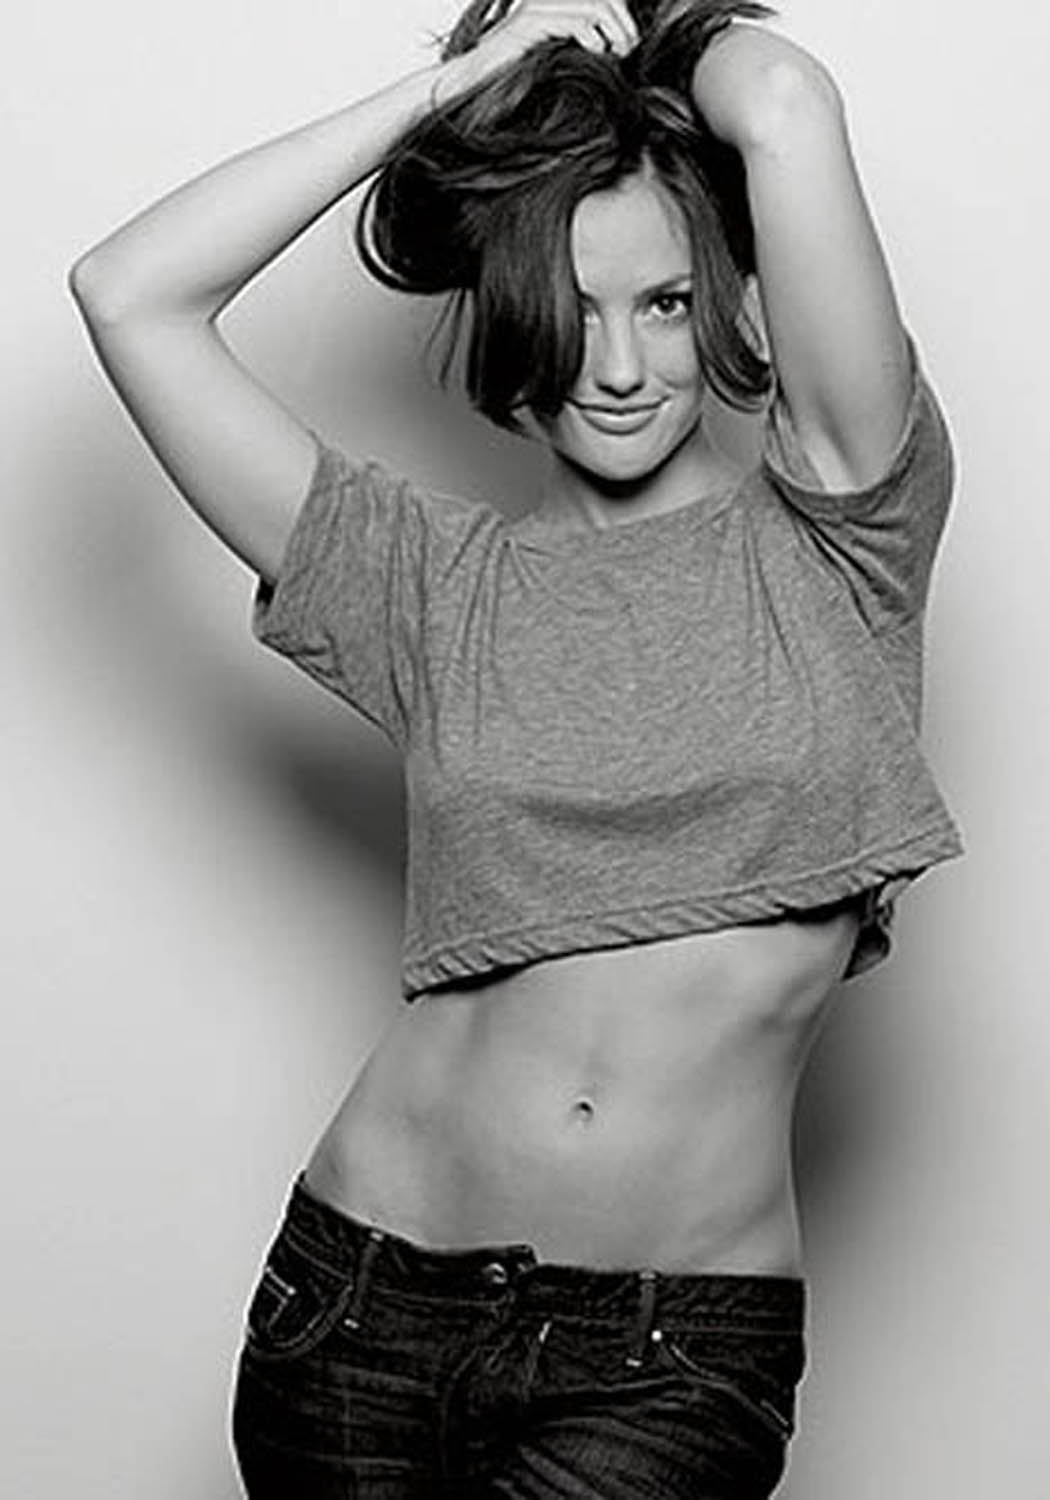 There minka kelly esquire